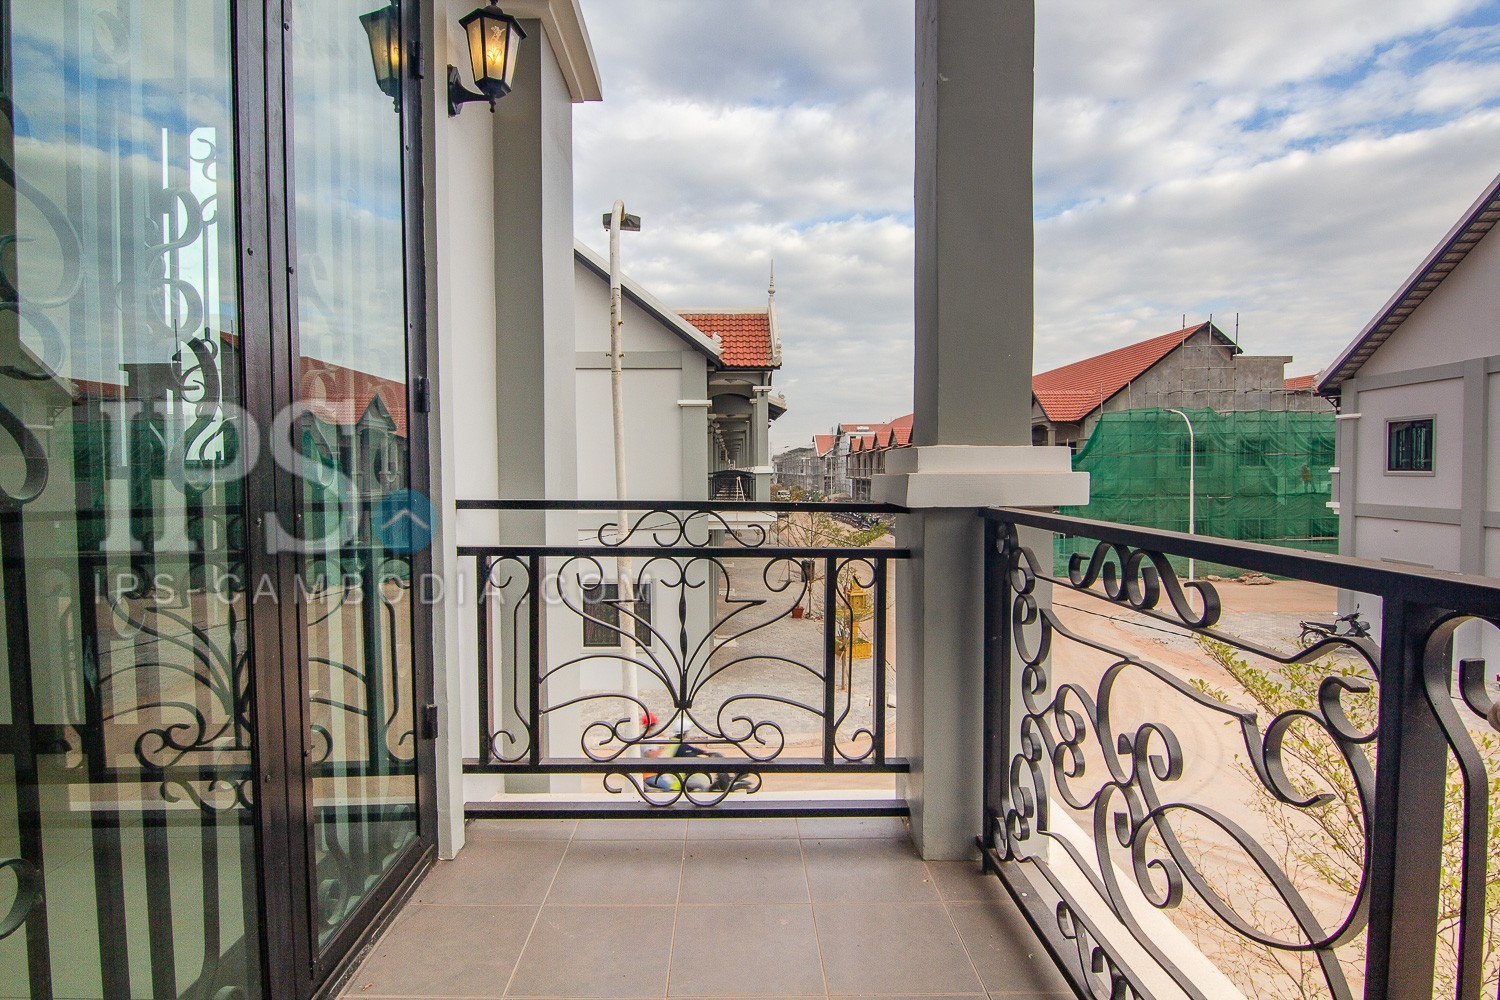 4 Bedroom Flat House For Sale - Svay Thom, Siem Reap